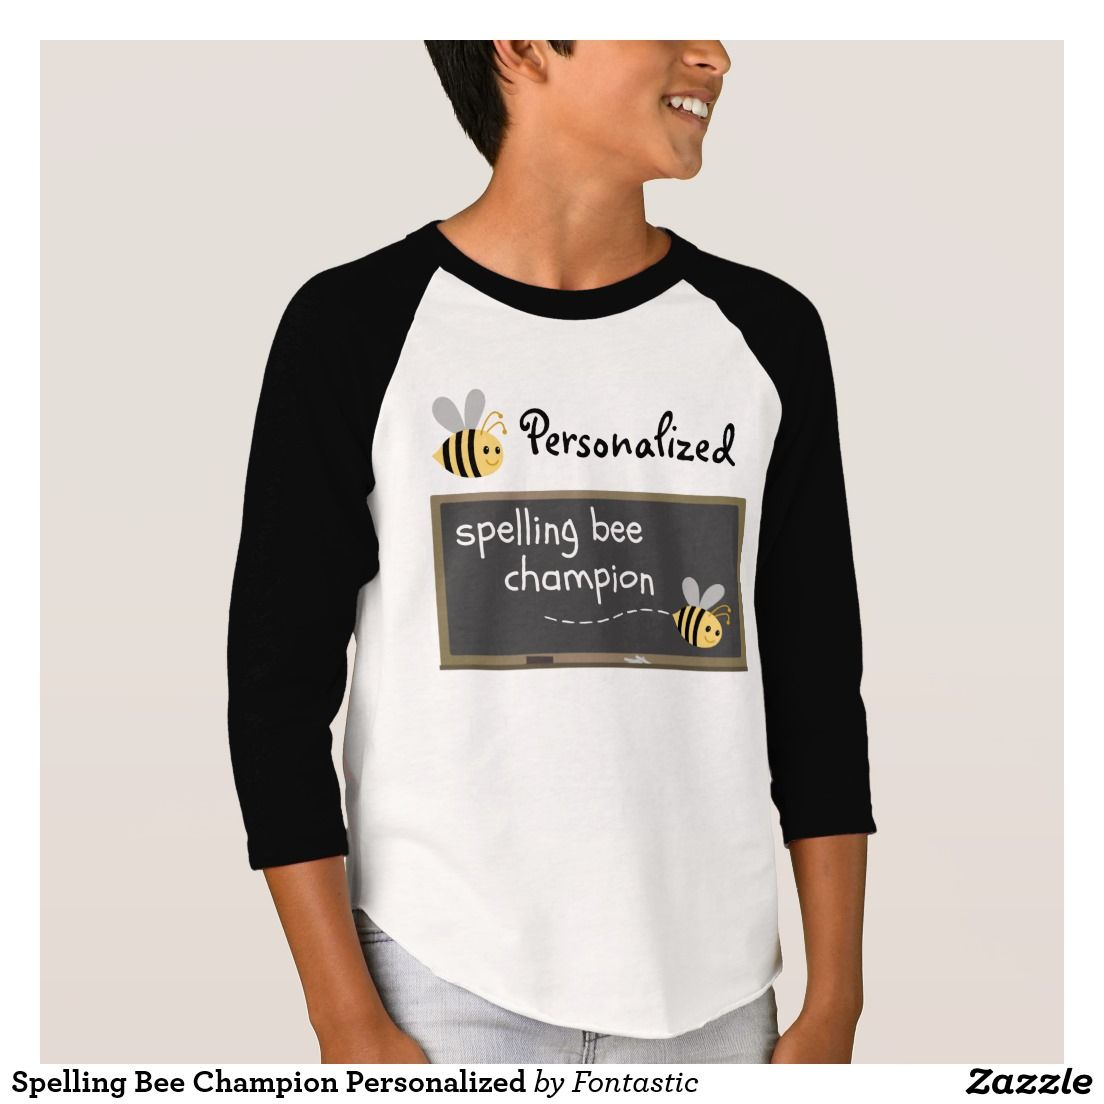 Design your own t shirt zazzle - Spelling Bee Champion Personalized T Shirt